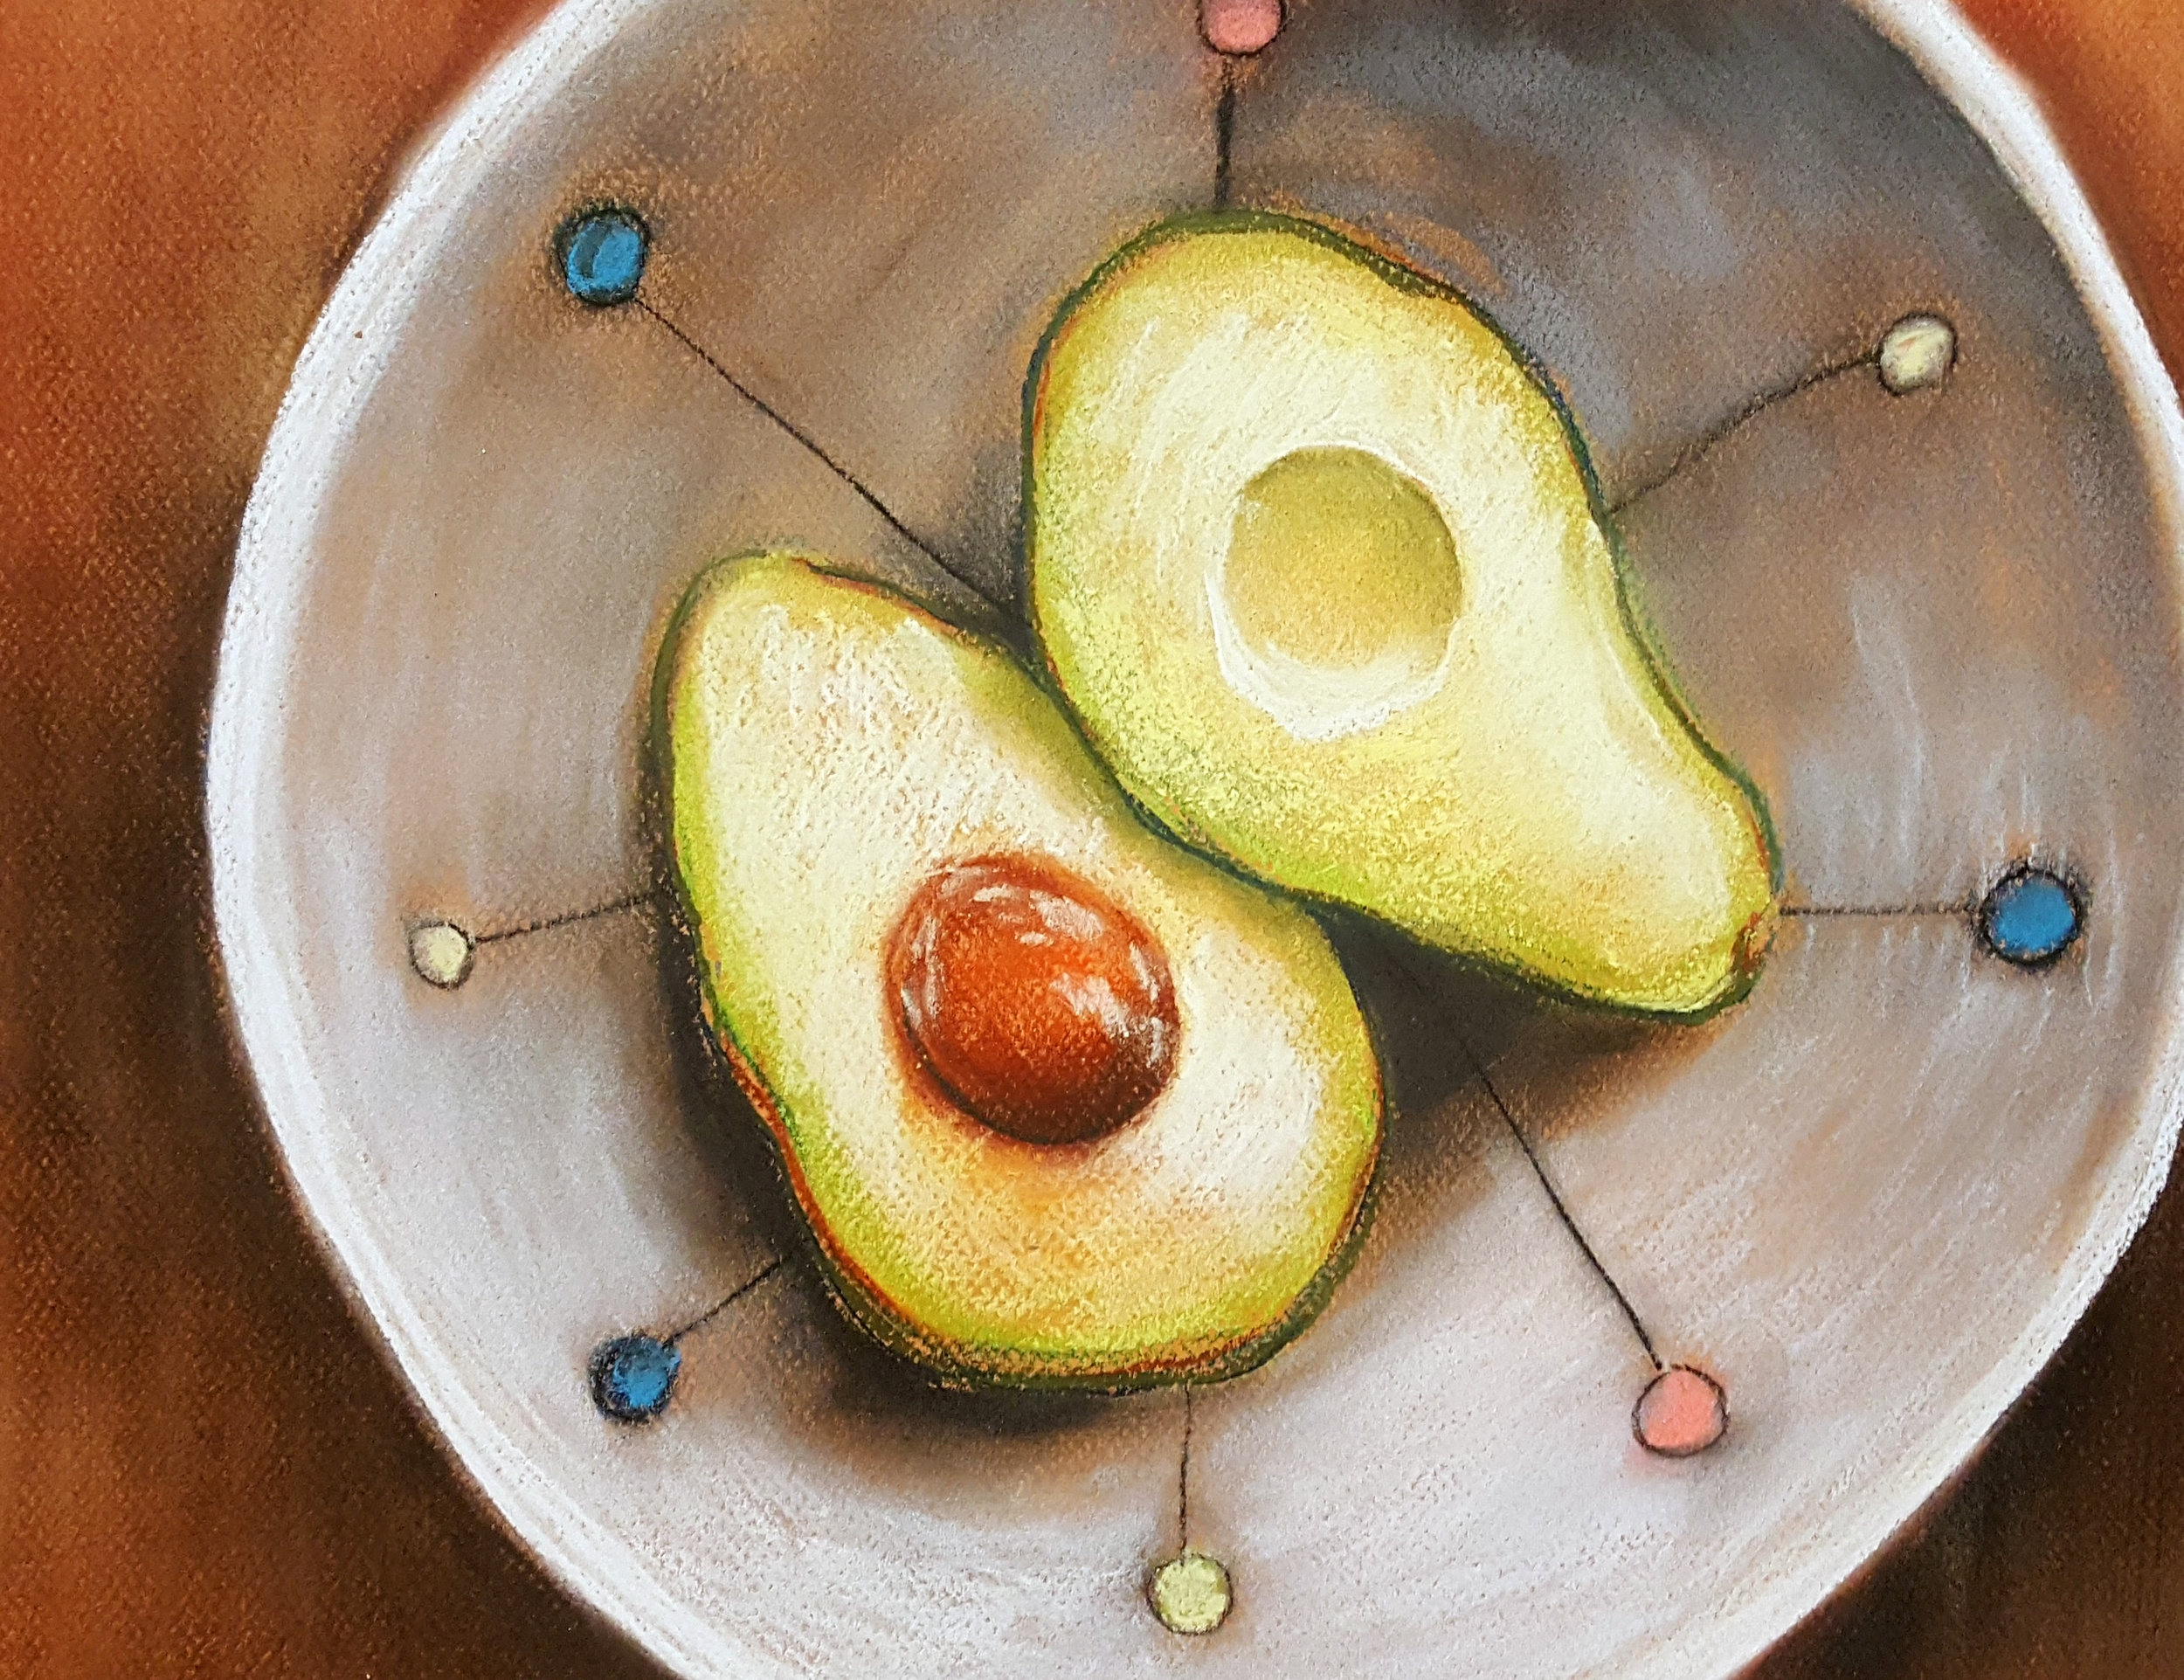 My Avocados and Favorite Bowl